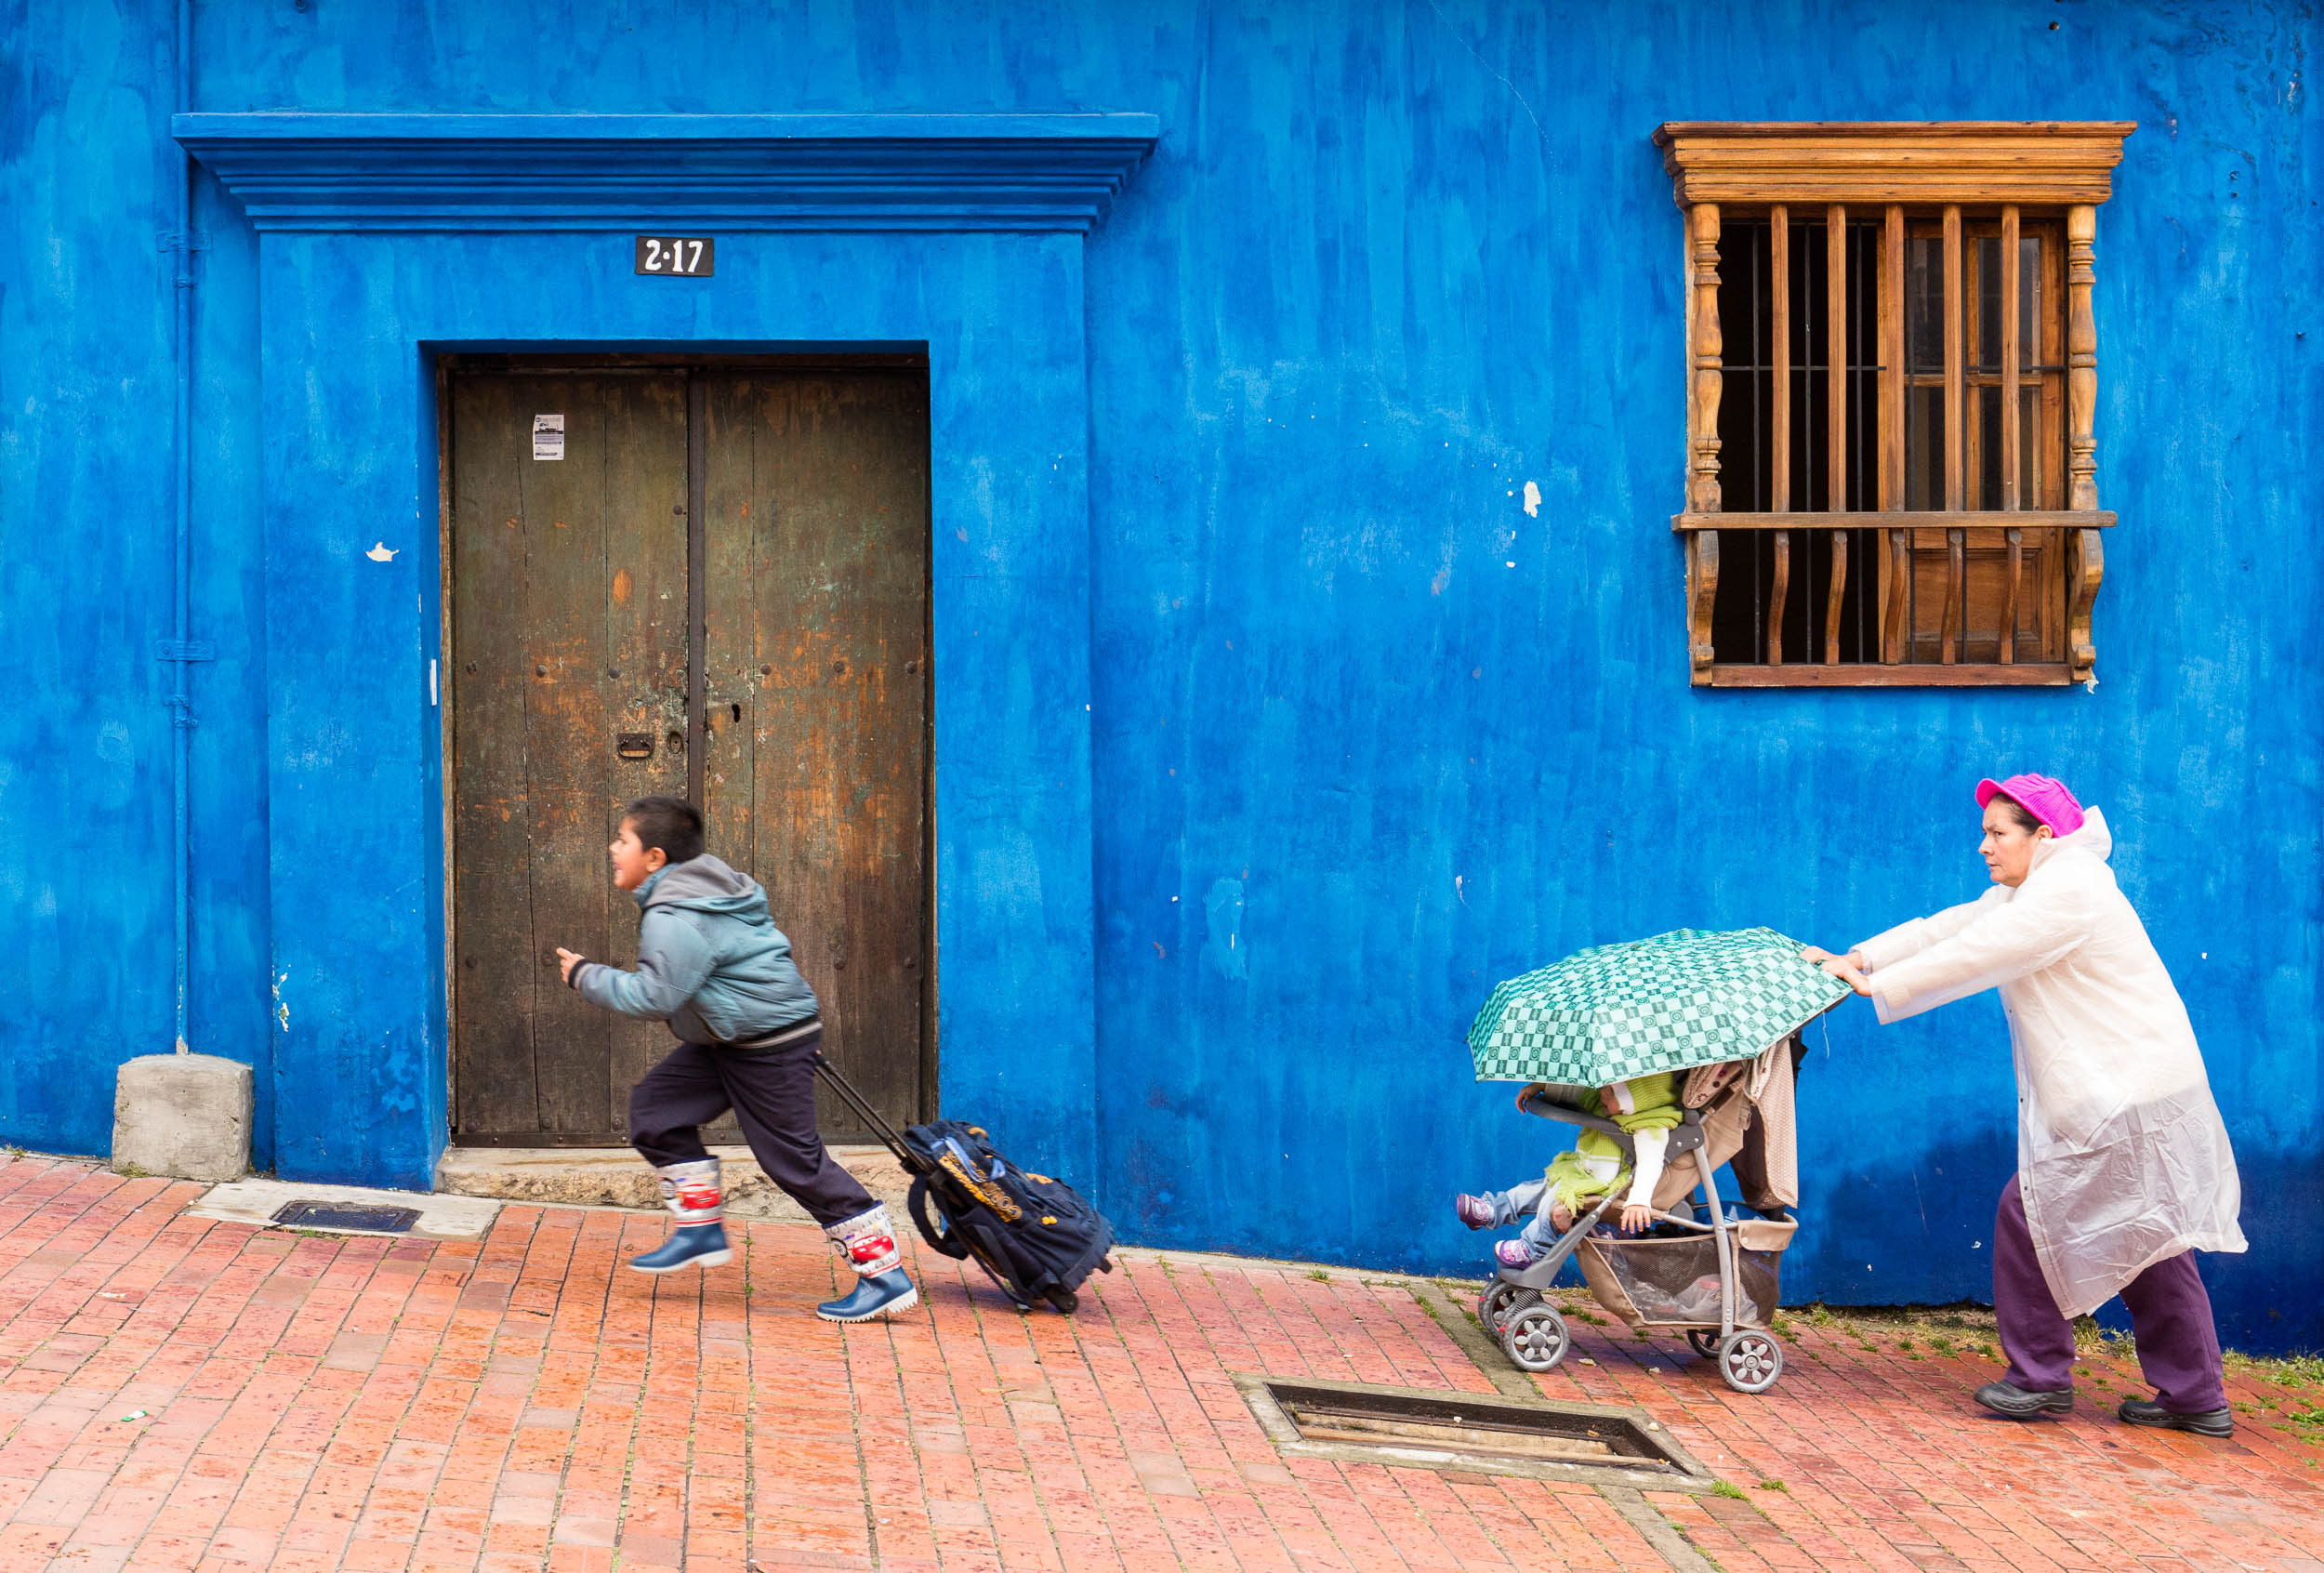 Colombia-Bogota-Blue-Wall-Angle